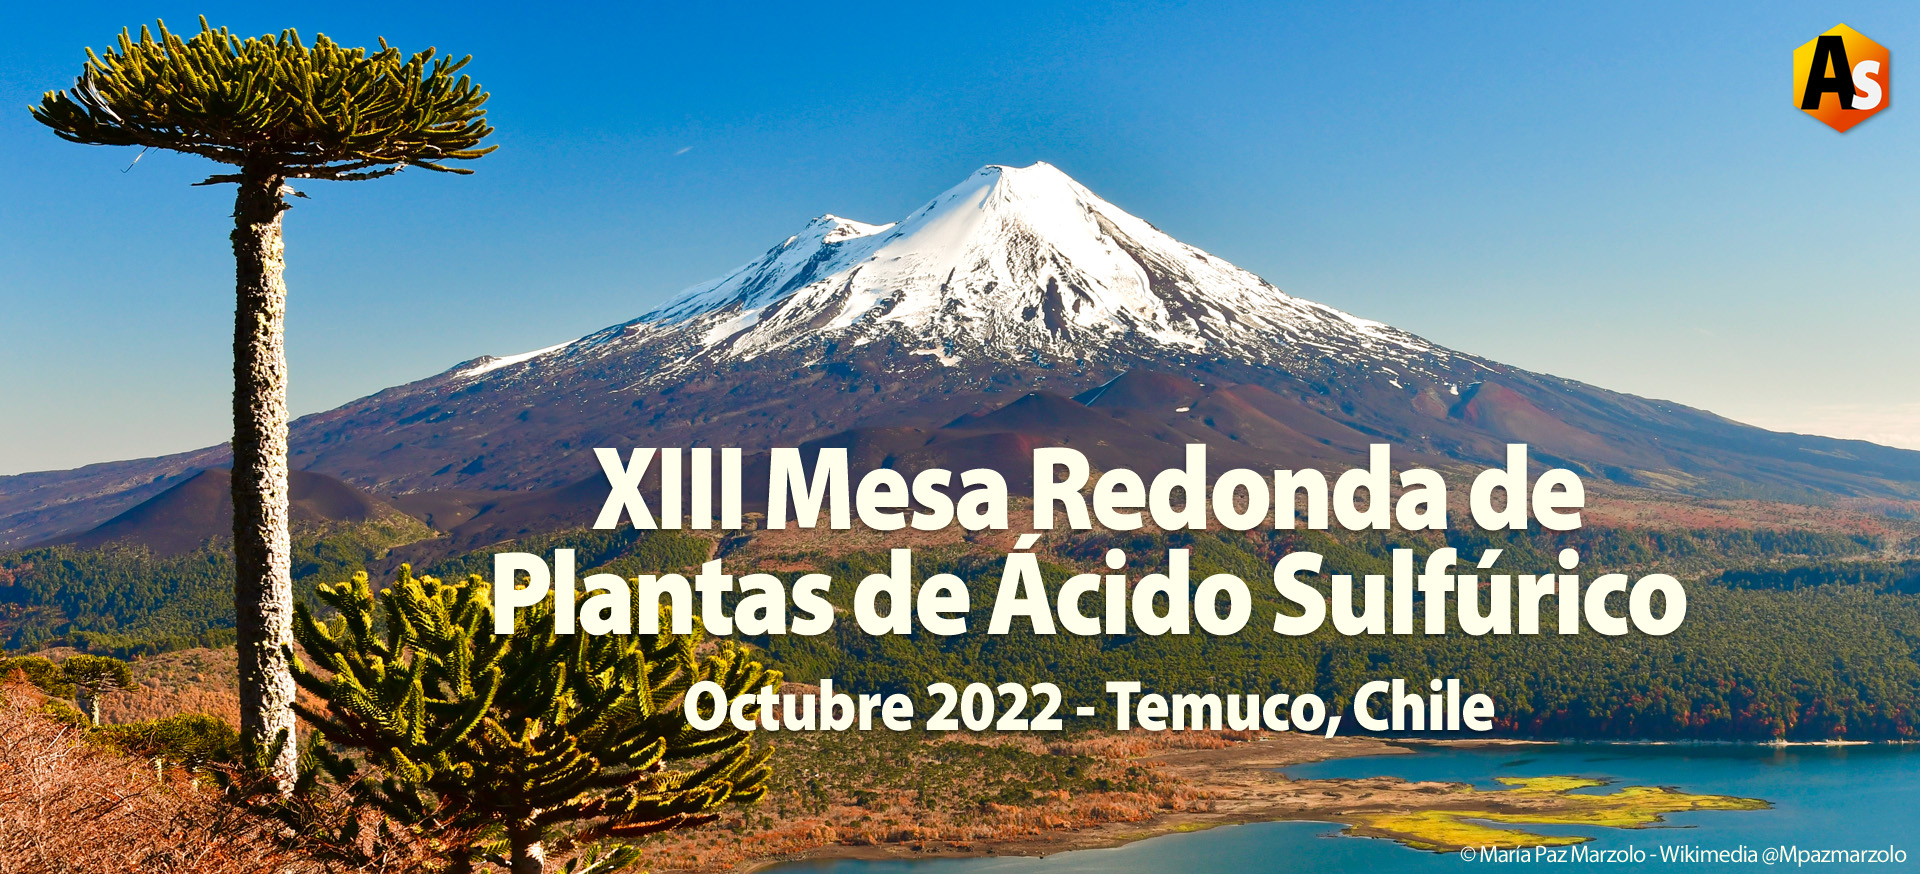 XIII Round Table of Sulfuric Acid Plants • Oct. 2022 • Temuco, Chile